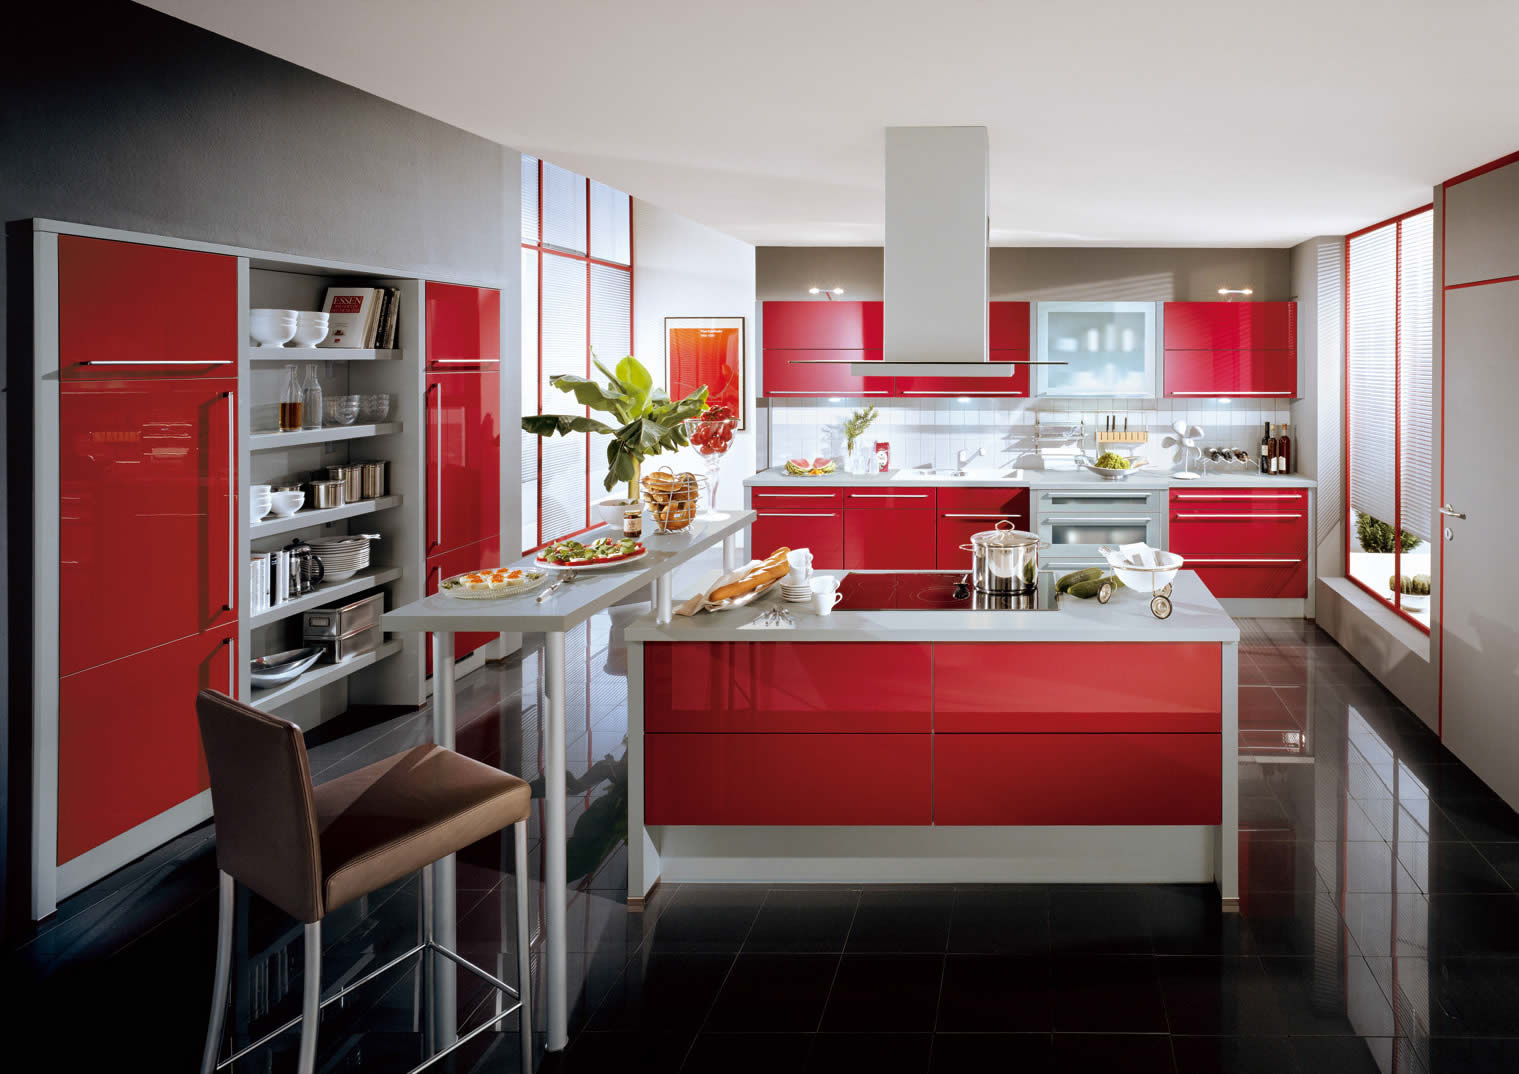 superbe-xeno-red-ultra-high-gloss-kitchen-cabinet-in-beautiful-kitchen-with-black-Ceramic-tiles-floor-and-gray-kitchen-bar-wonderful-high-gloss-kitchen-kitchen- idées-de-contemporaines